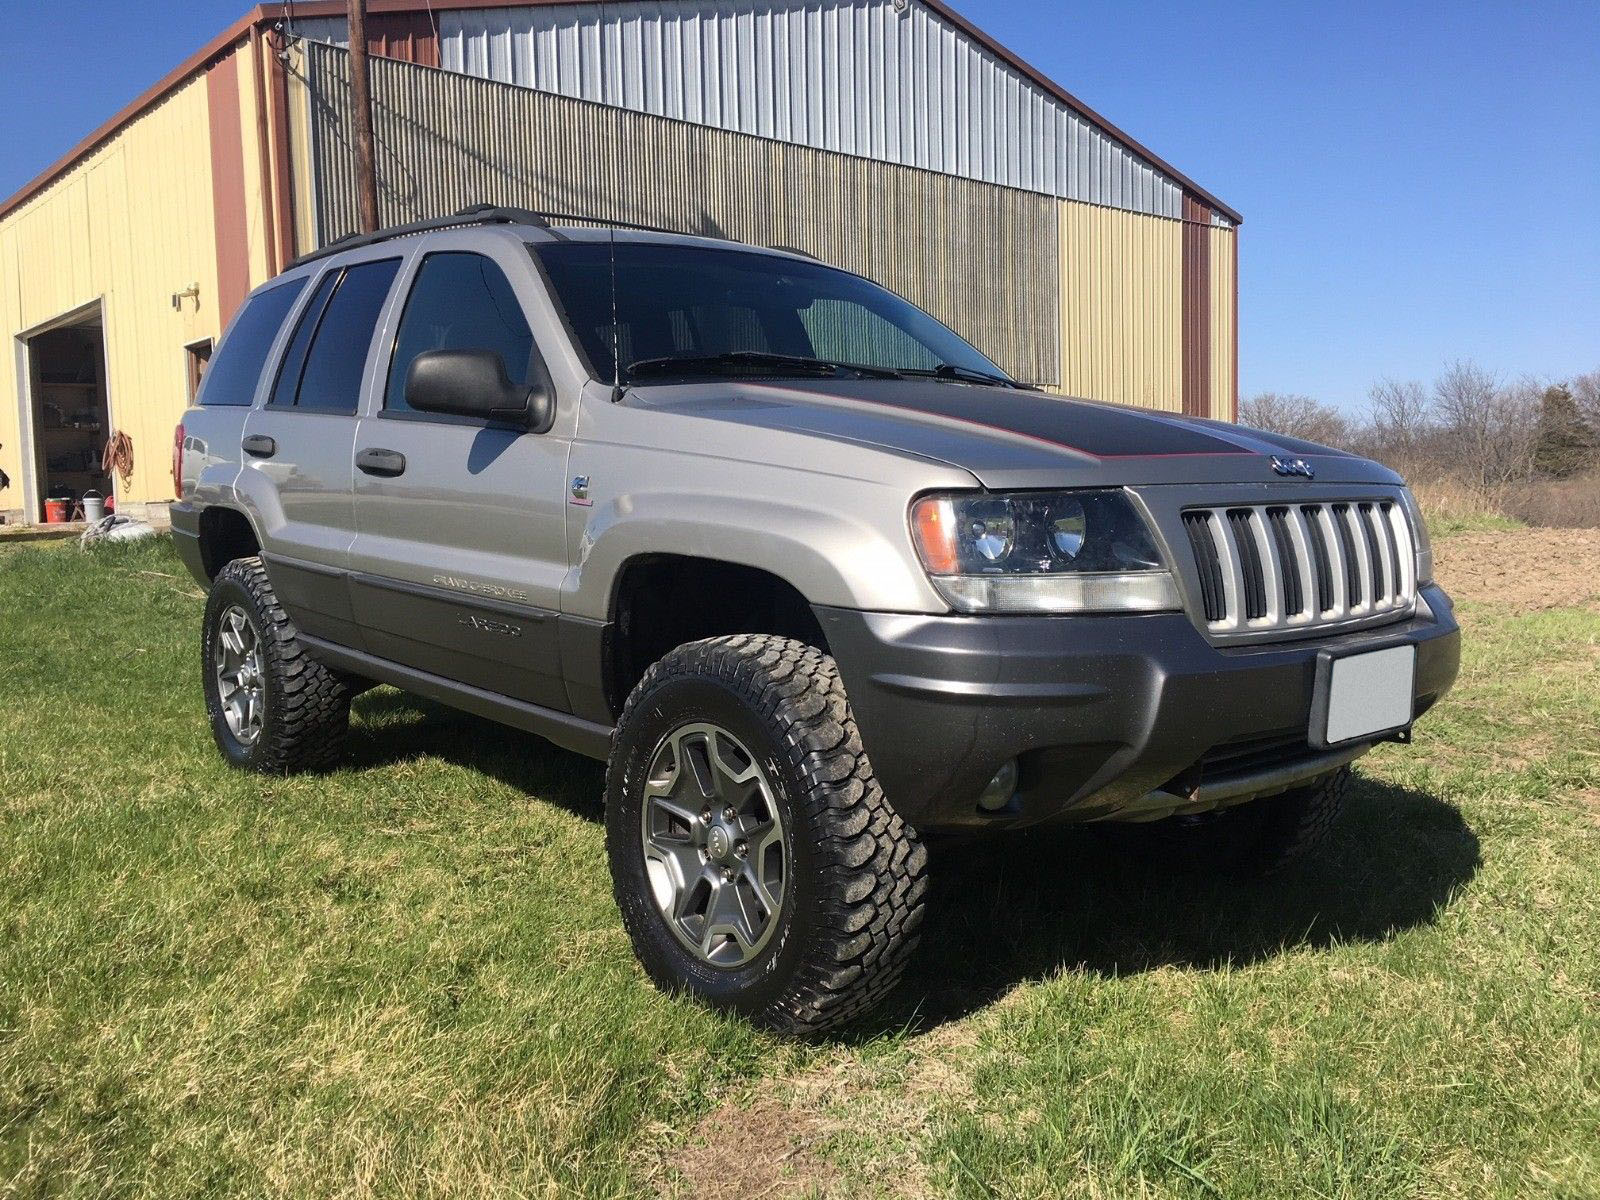 for sale 2001 grand cherokee with a cummins b3 3 turbo diesel engine swap depot. Black Bedroom Furniture Sets. Home Design Ideas